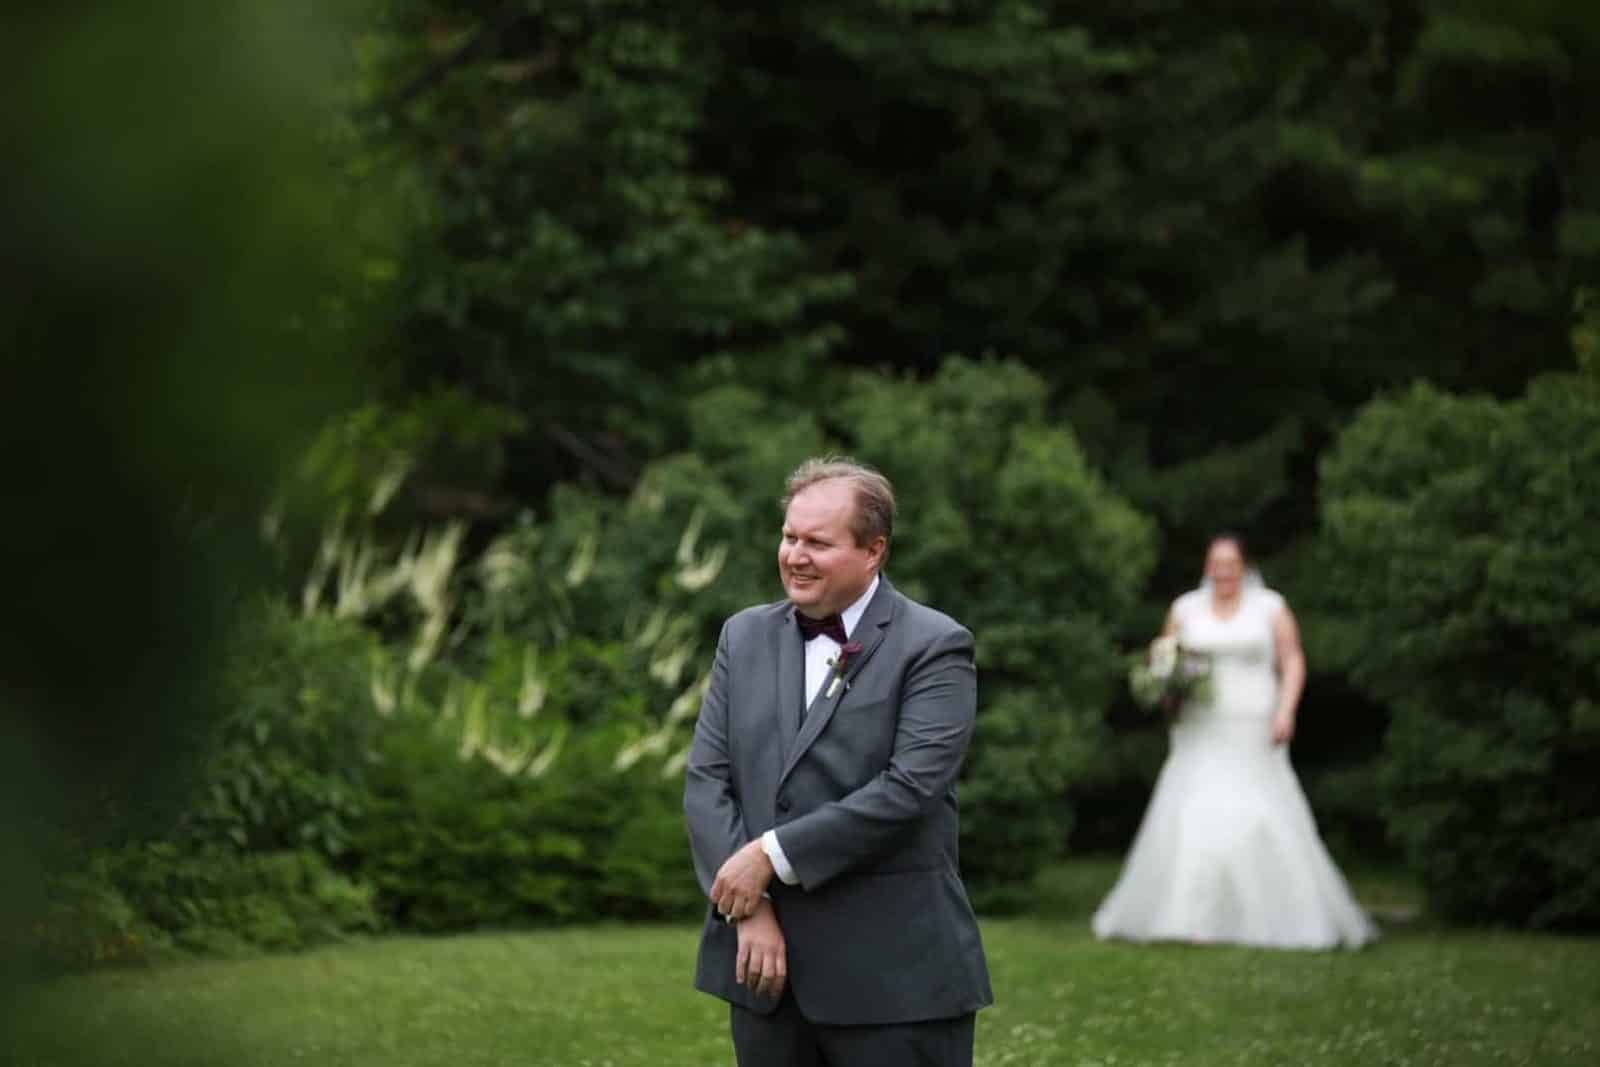 First Look. Groom in focus with a smile bride behind him walking towards grooms back in the ornamental garden